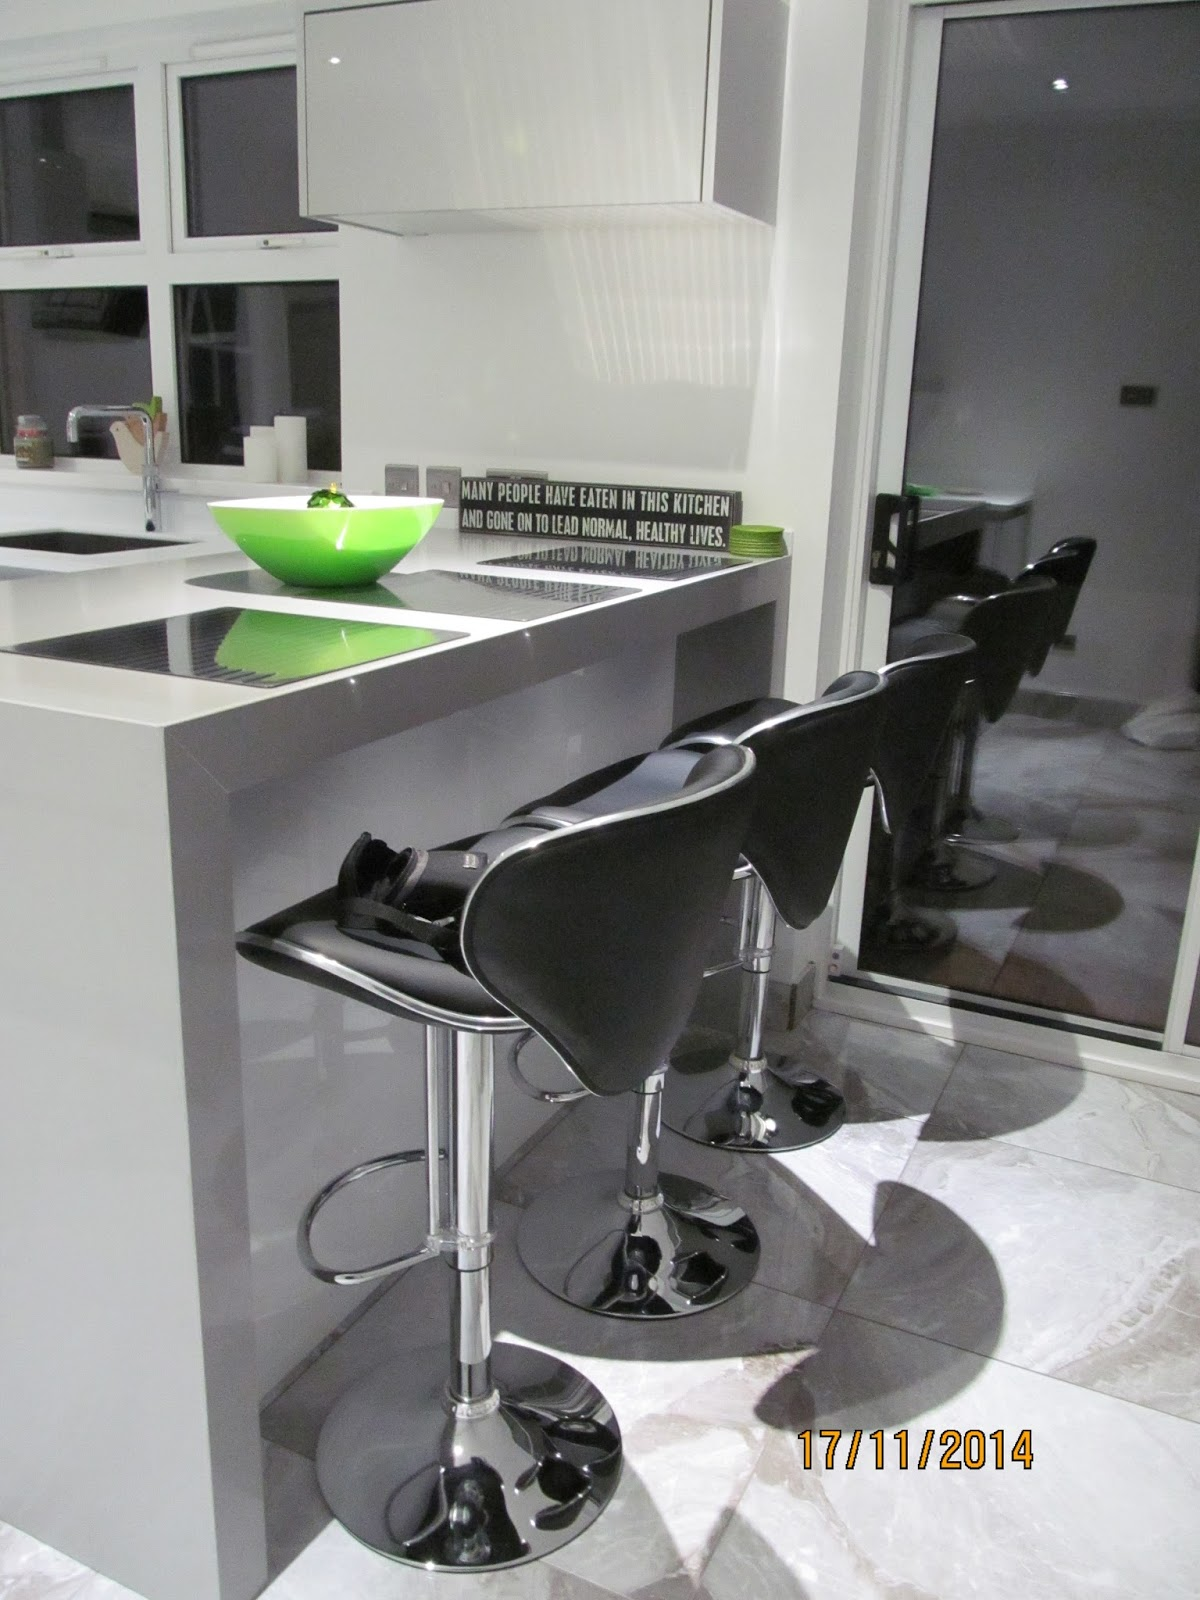 funky direct kitchens and bathrooms embellishment kitchen cabinets